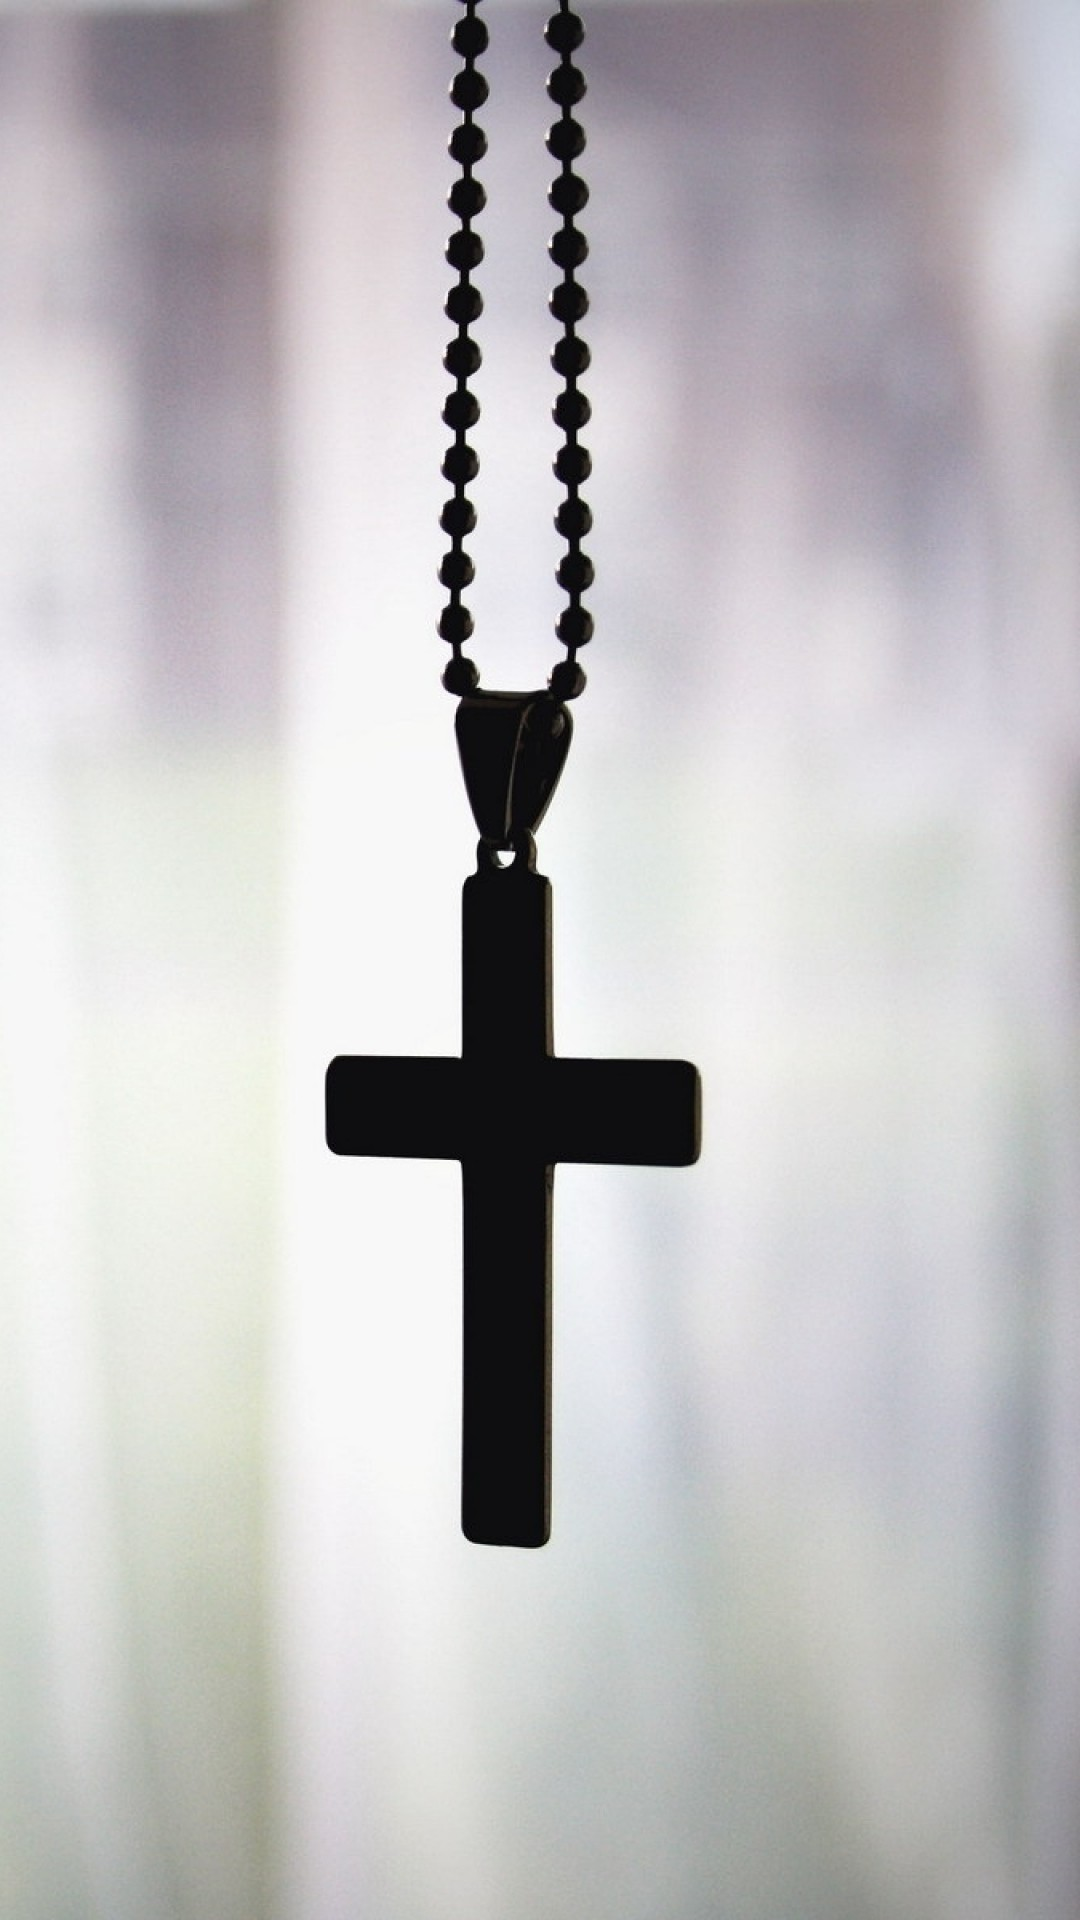 Preview wallpaper cross, pendant, chain, faith, christianity, orthodoxy  1080×1920